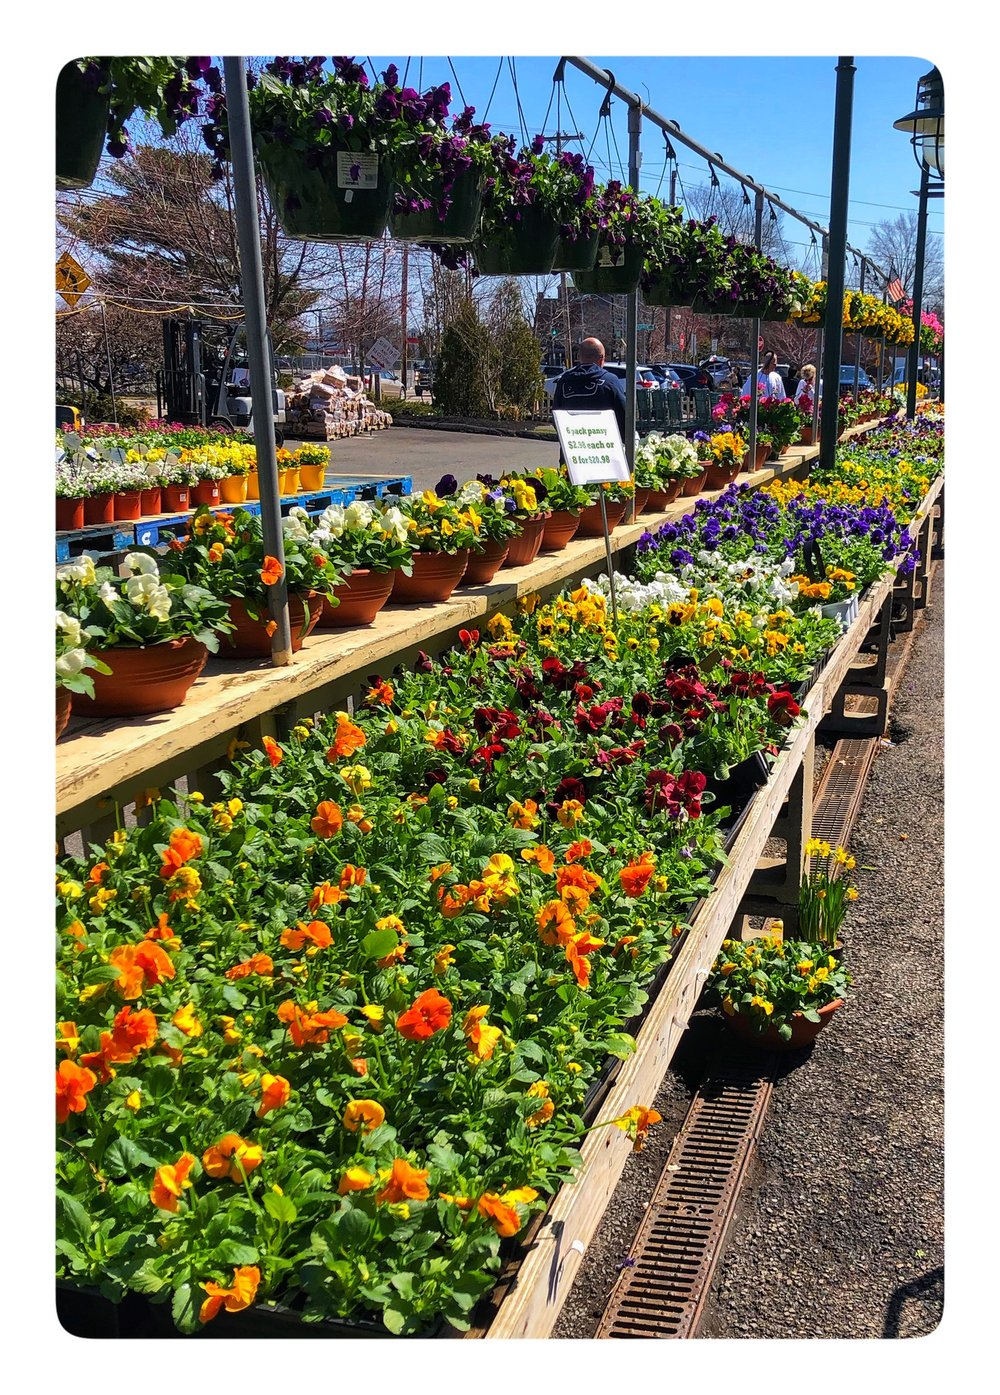 Flowers, plants, herbs and more arriving daily at Russo's!